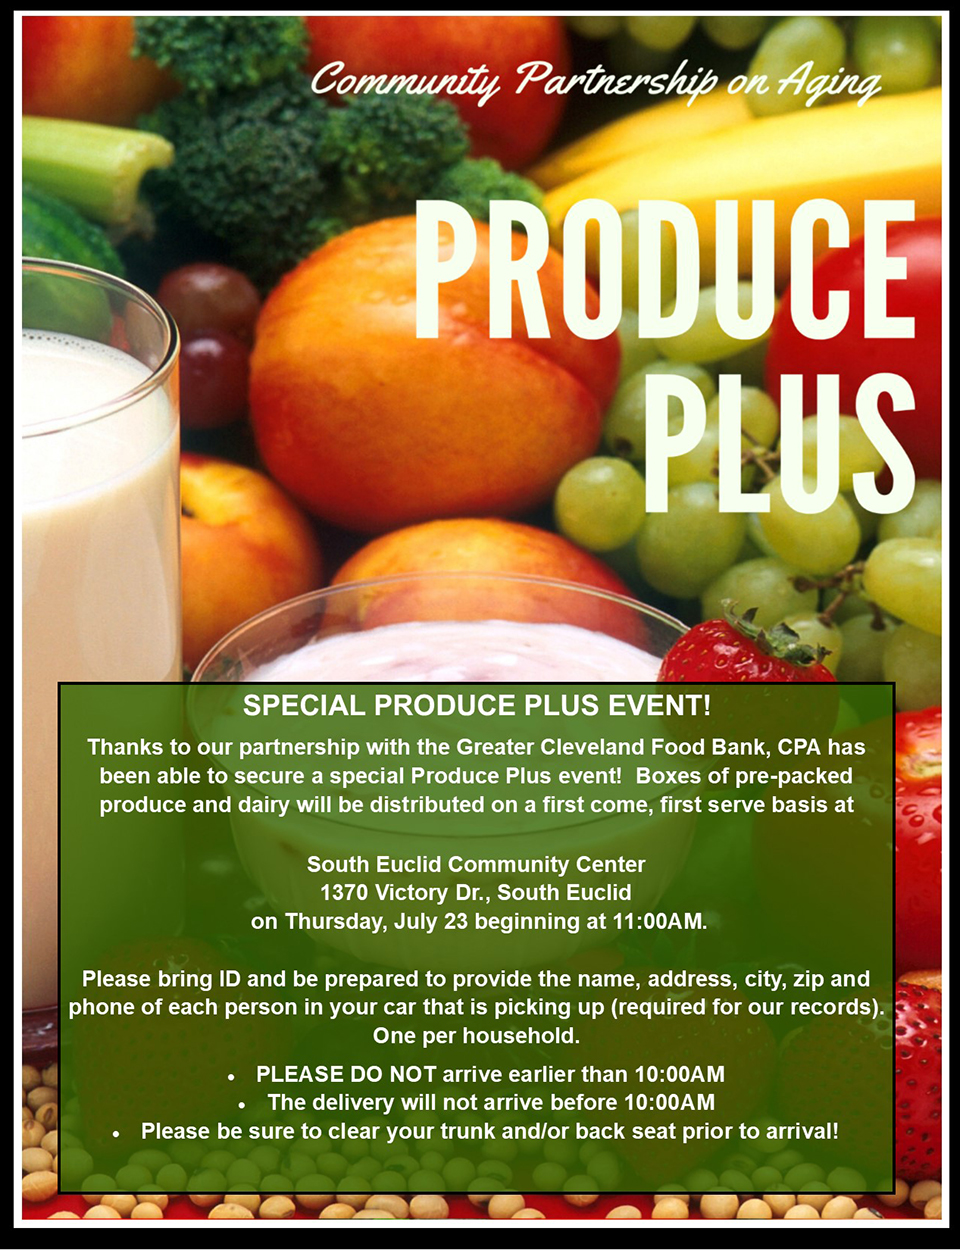 CPA Special Produce Plus Event flier.